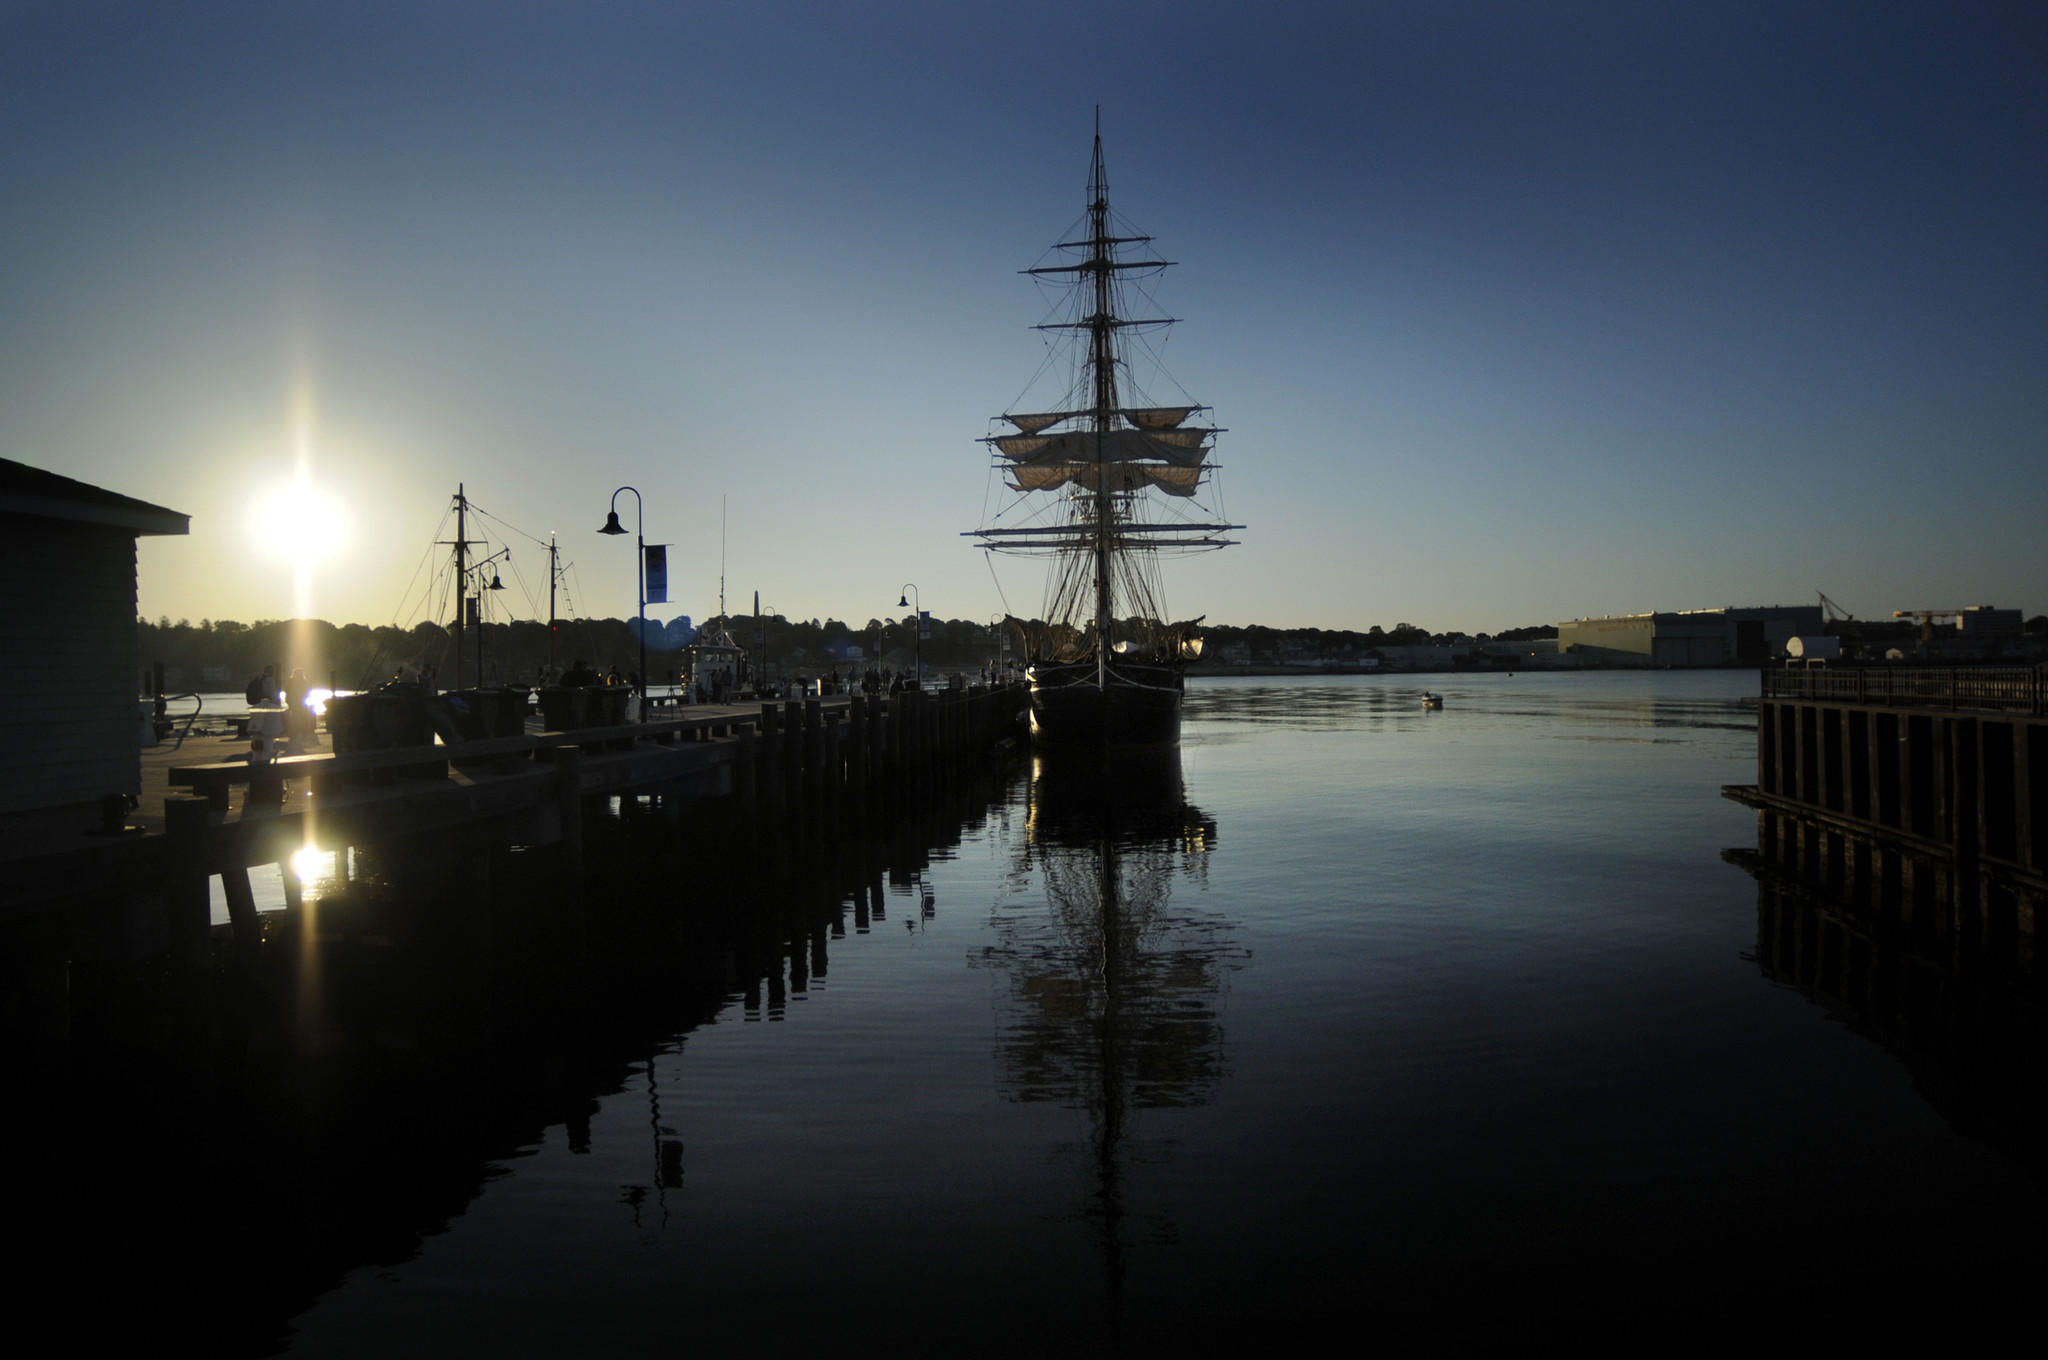 The Charles W. Morgan sits at the State Pier in New London at dawn on June 15, awaiting her new life as a restored sailing ship. A new state Port Authority could help revitalize New London harbor, one of the state's three deepwater ports.